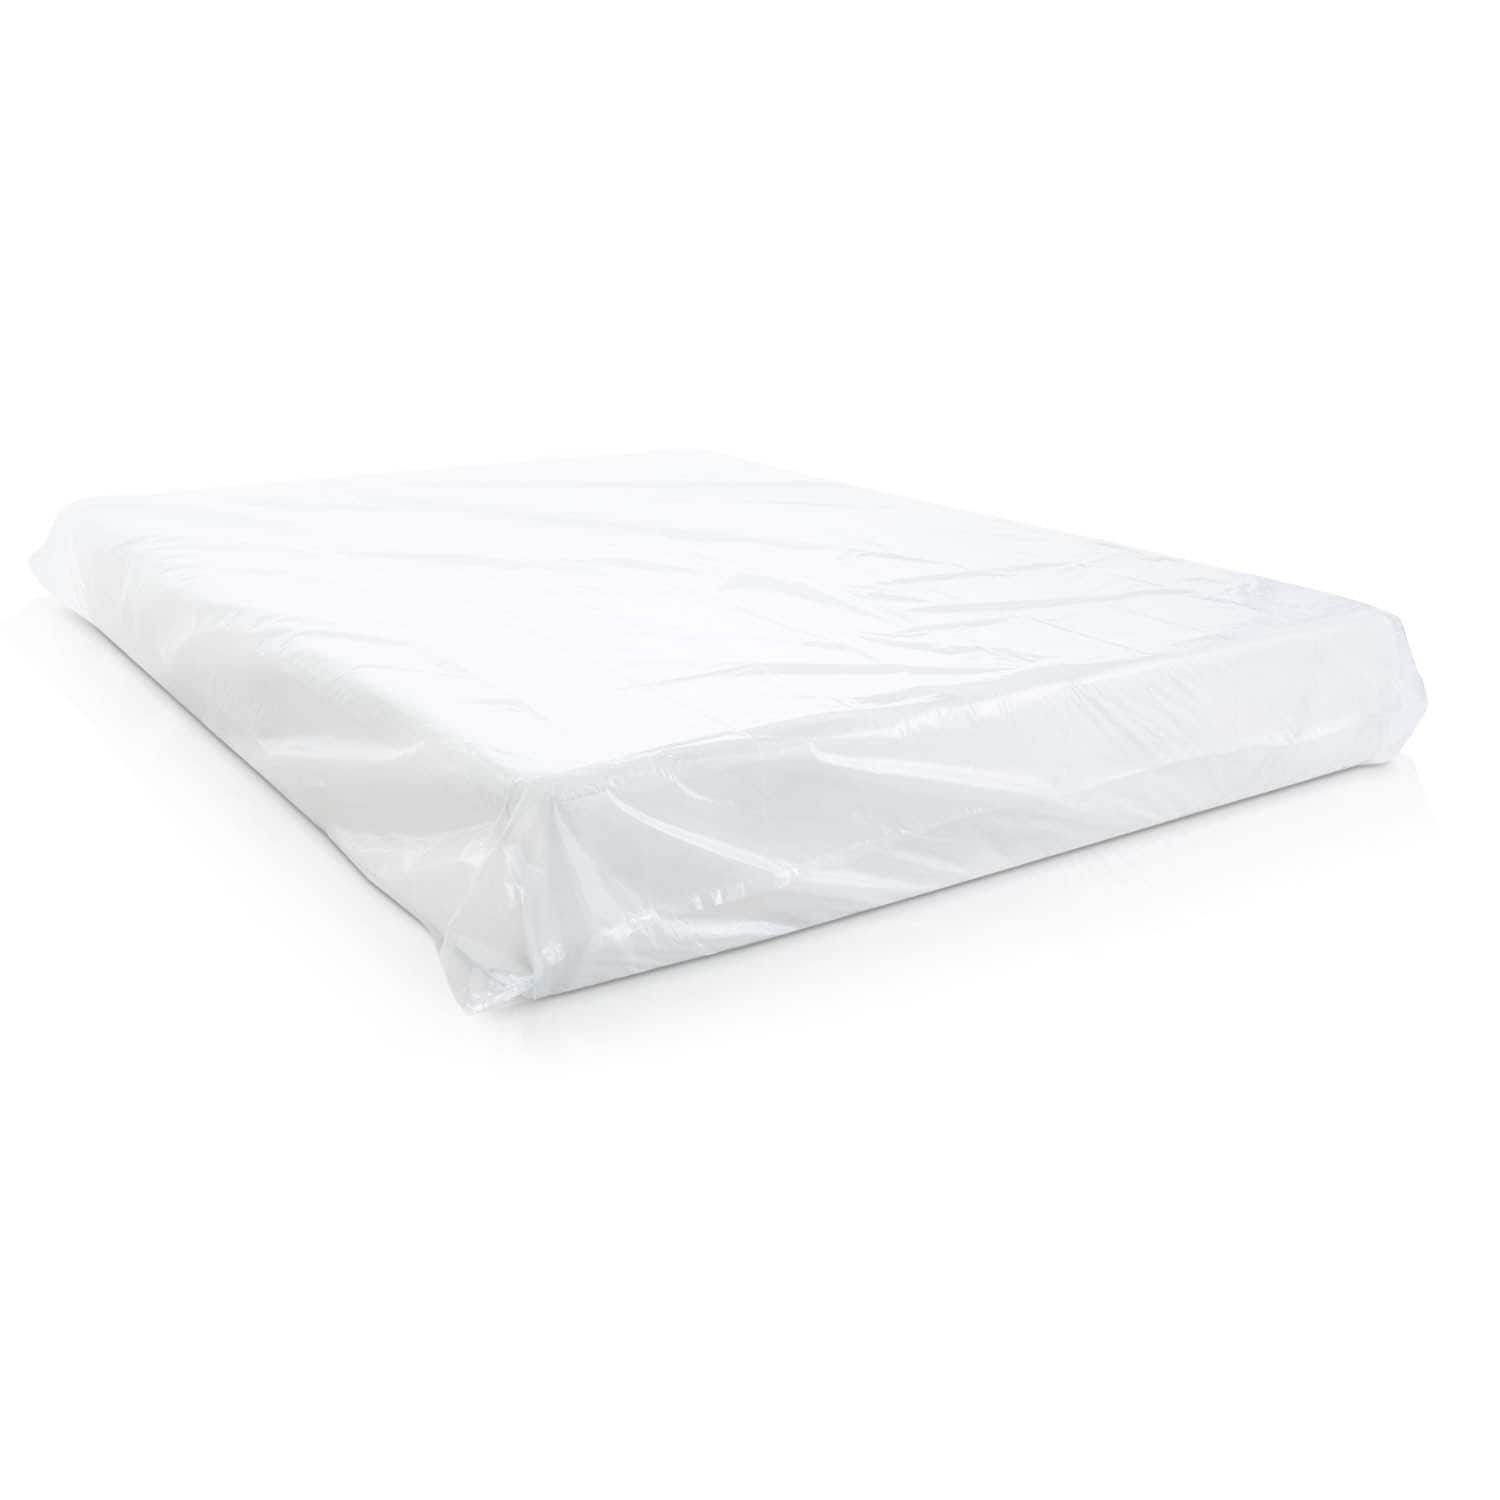 protector mattress in imported review size cover pads sheet brands full sale prices bags vinyl for fitted shop overstock toppers